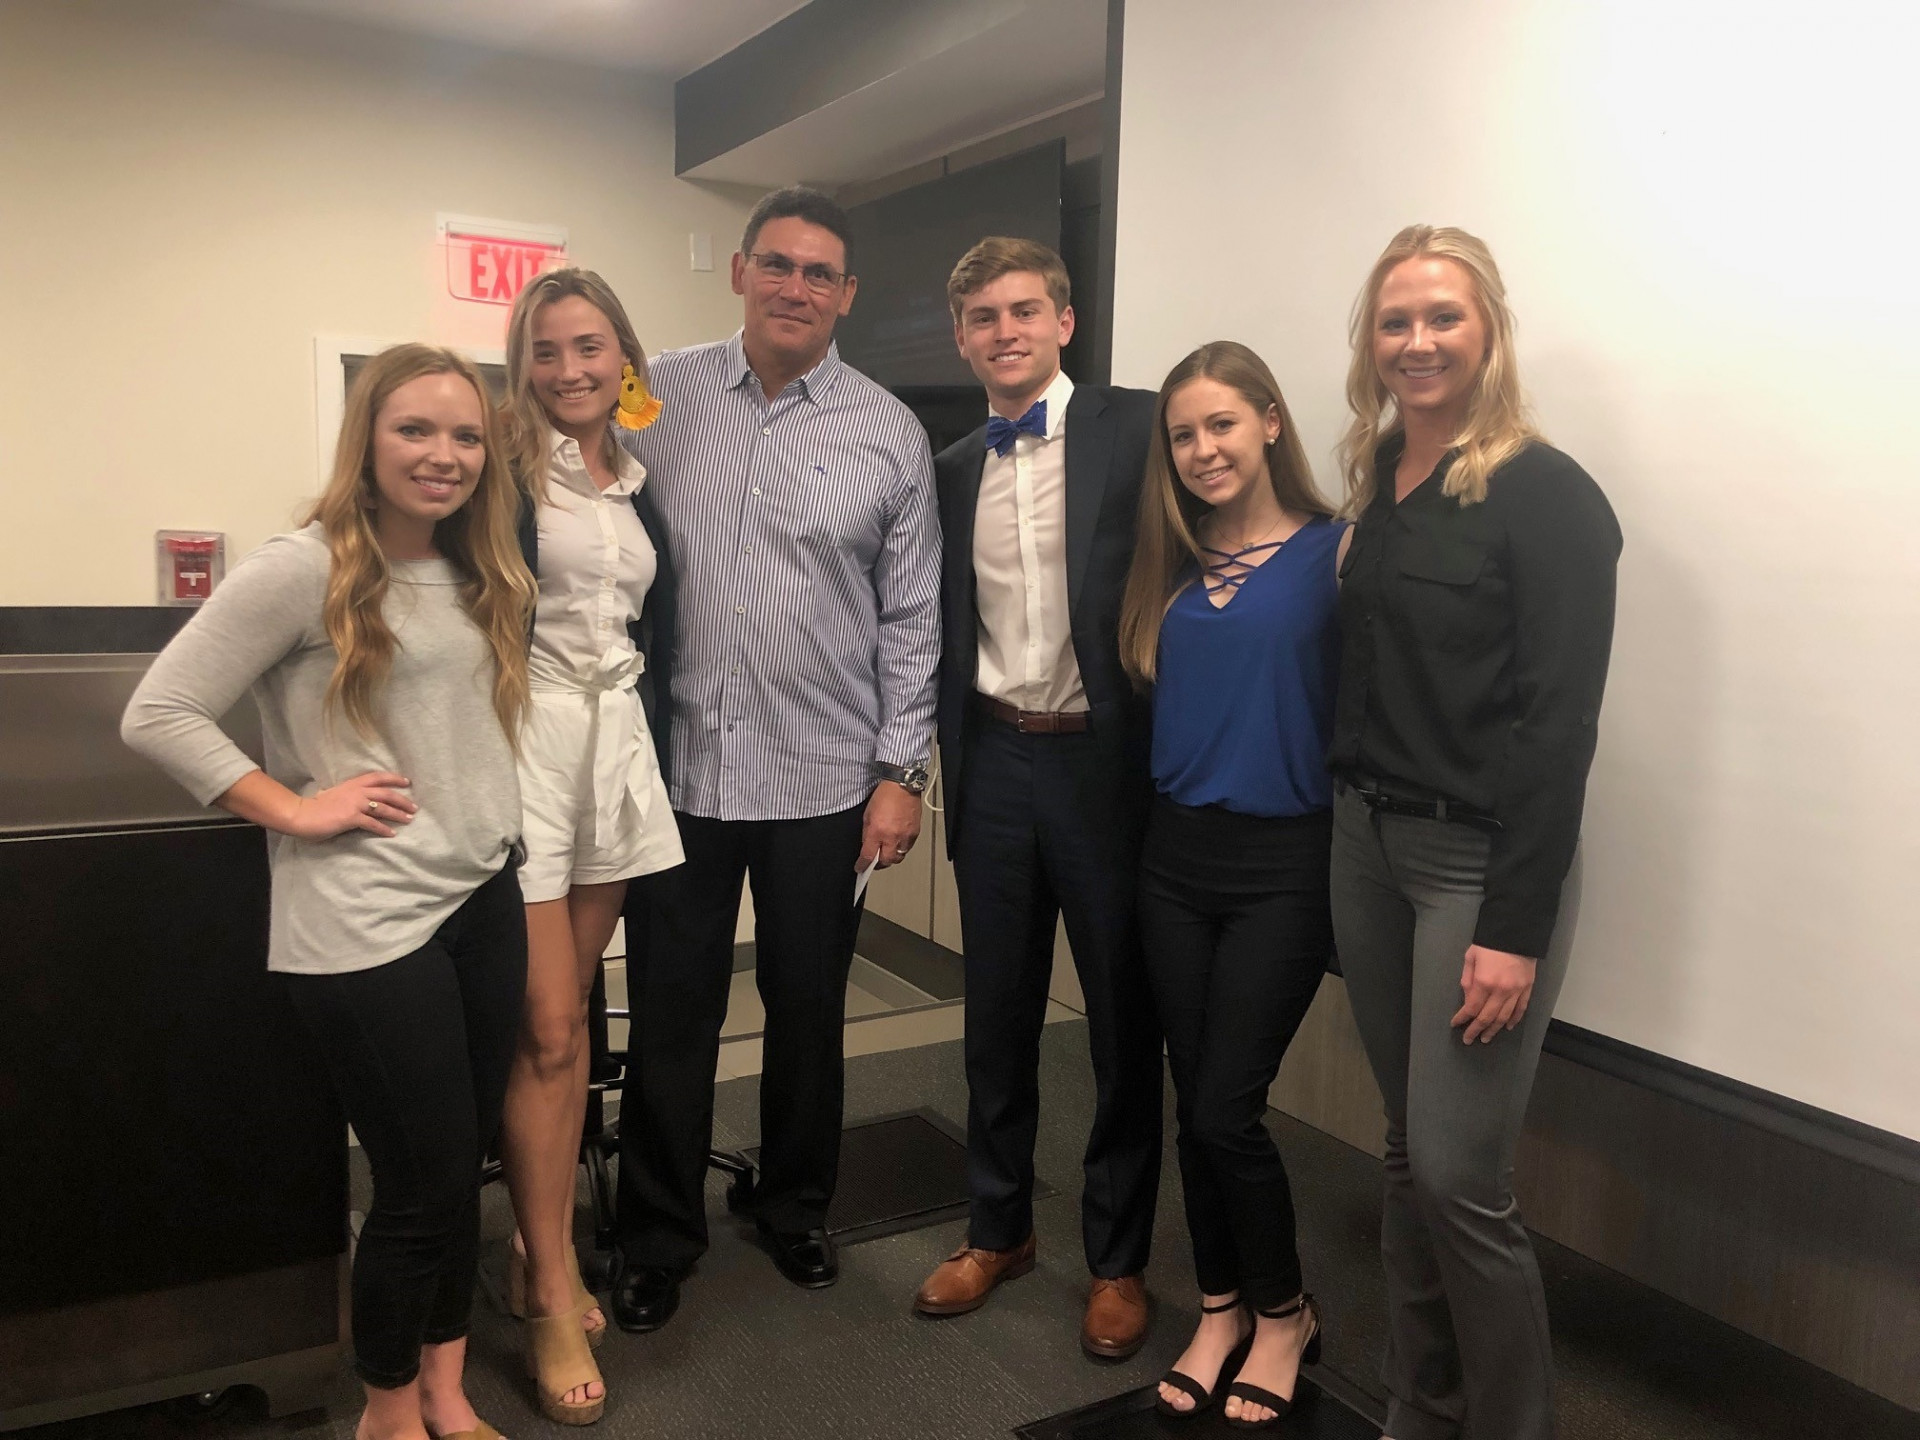 Ron Rivera, 3rd from left, with members of the NSMA student chapter board at the University of South Carolina